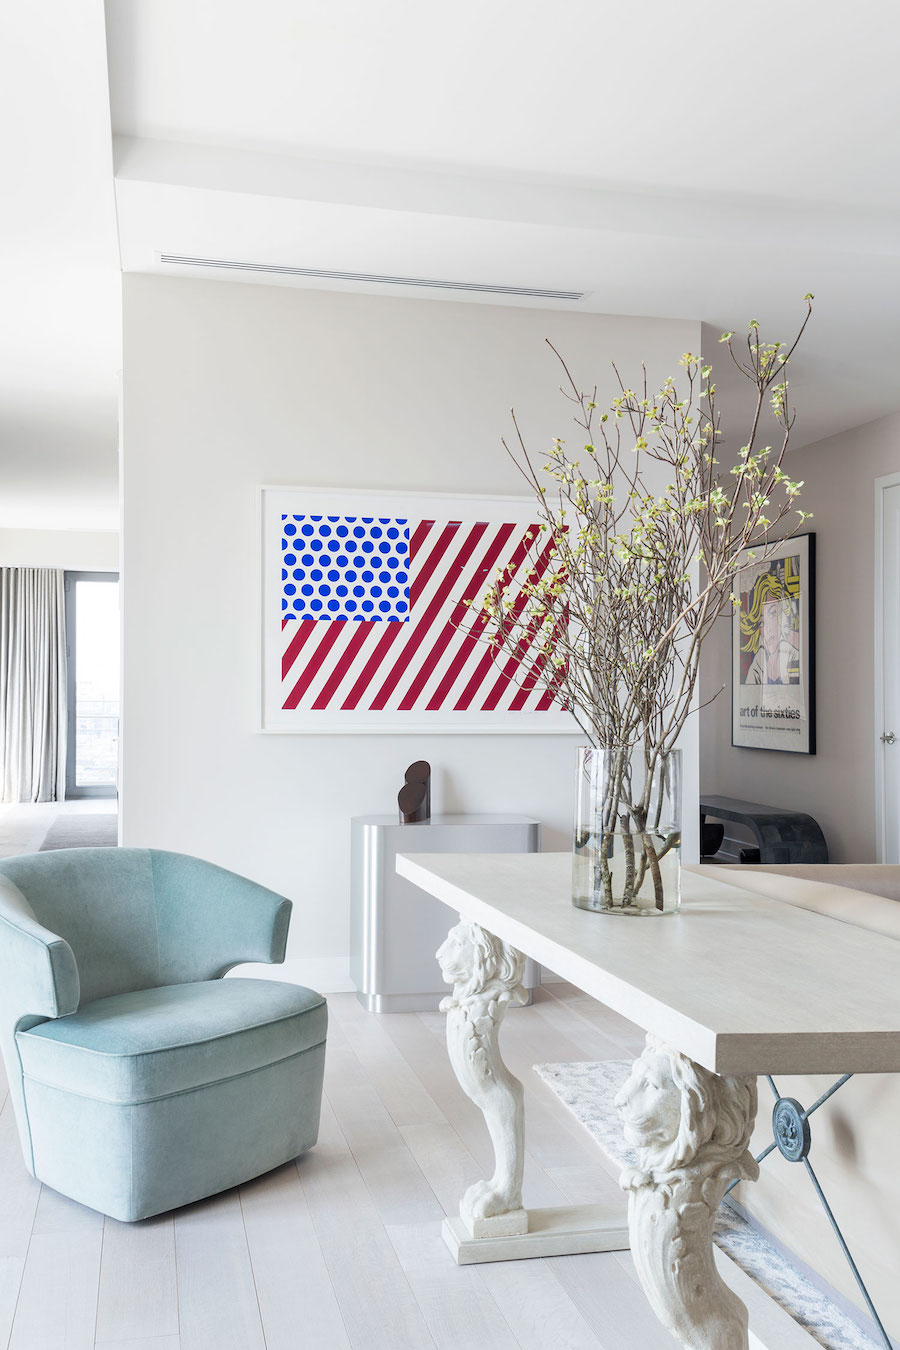 16 Wonderfully Patriotic Americana Decor Ideas for the Home